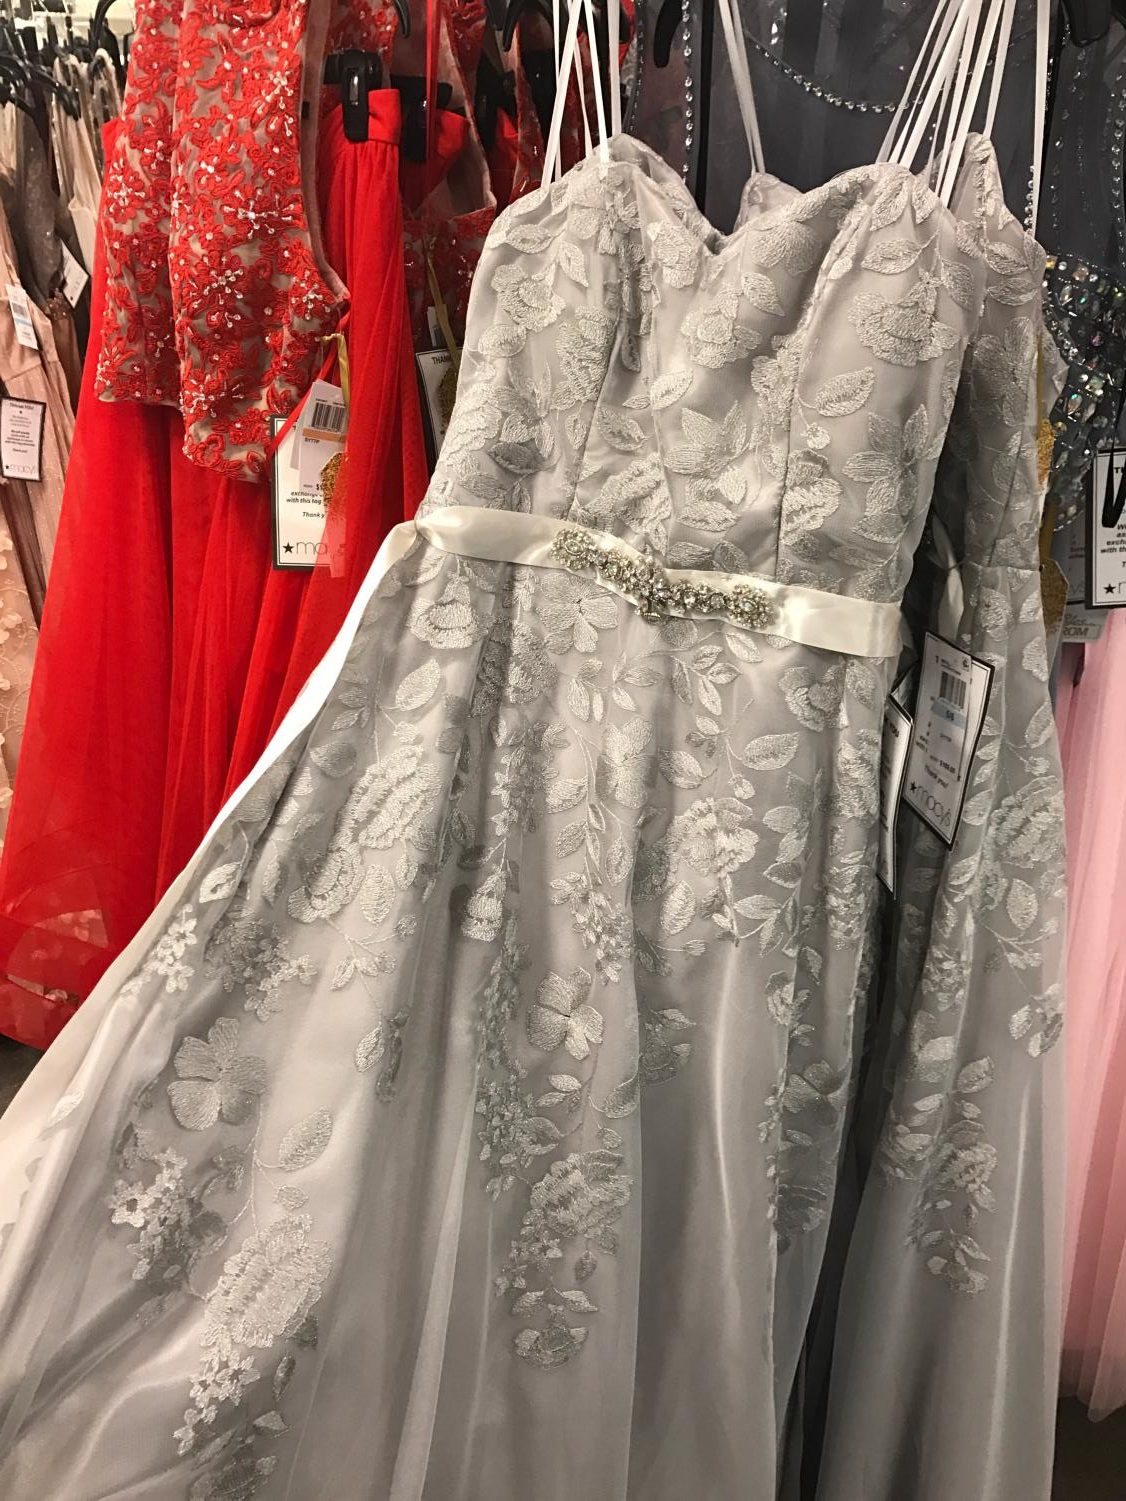 Prom dresses fill the entire back wall of the top floor of Dillard's. There were thousands of dresses to choose from. Photo credit to Sheri Edler.